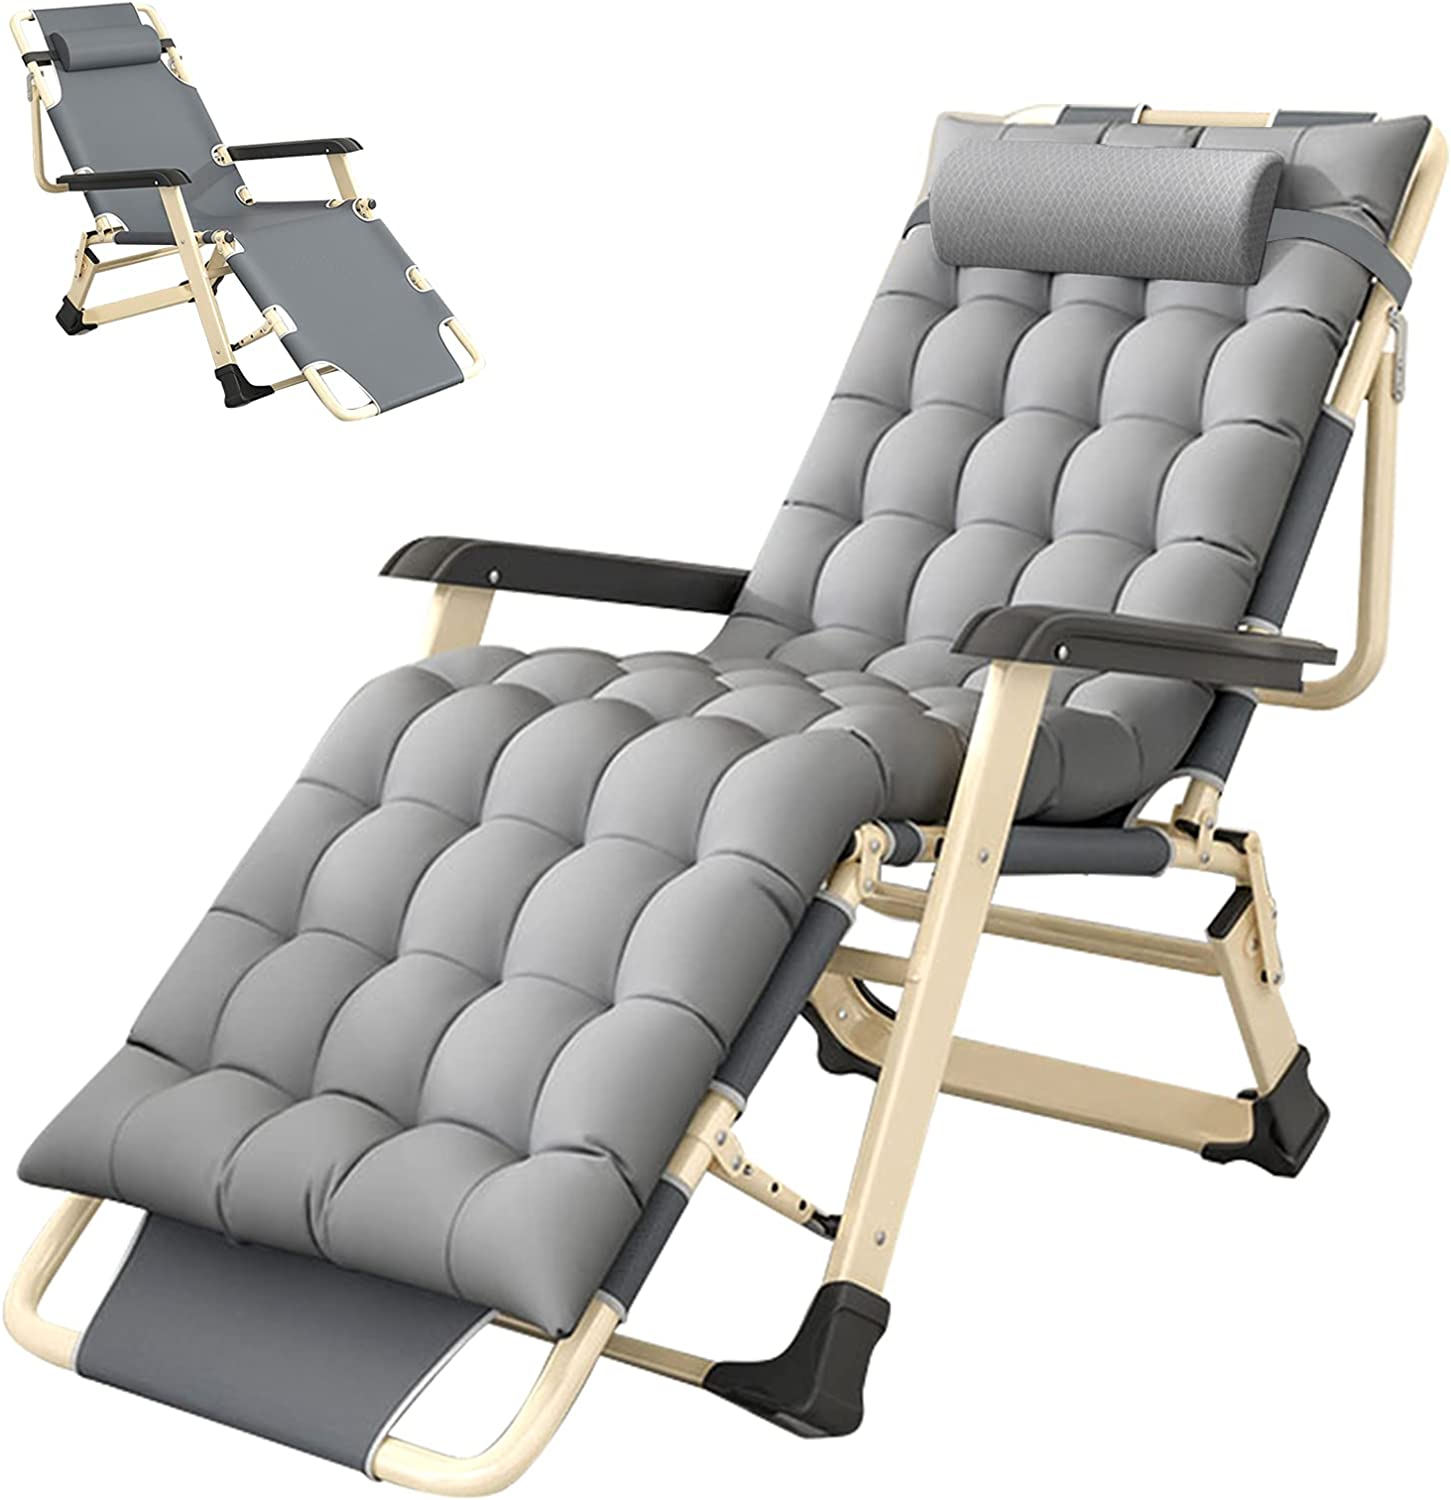 SLSY Chaise Lounge Chair Flat Removable SEAL limited product Full Colorado Springs Mall with